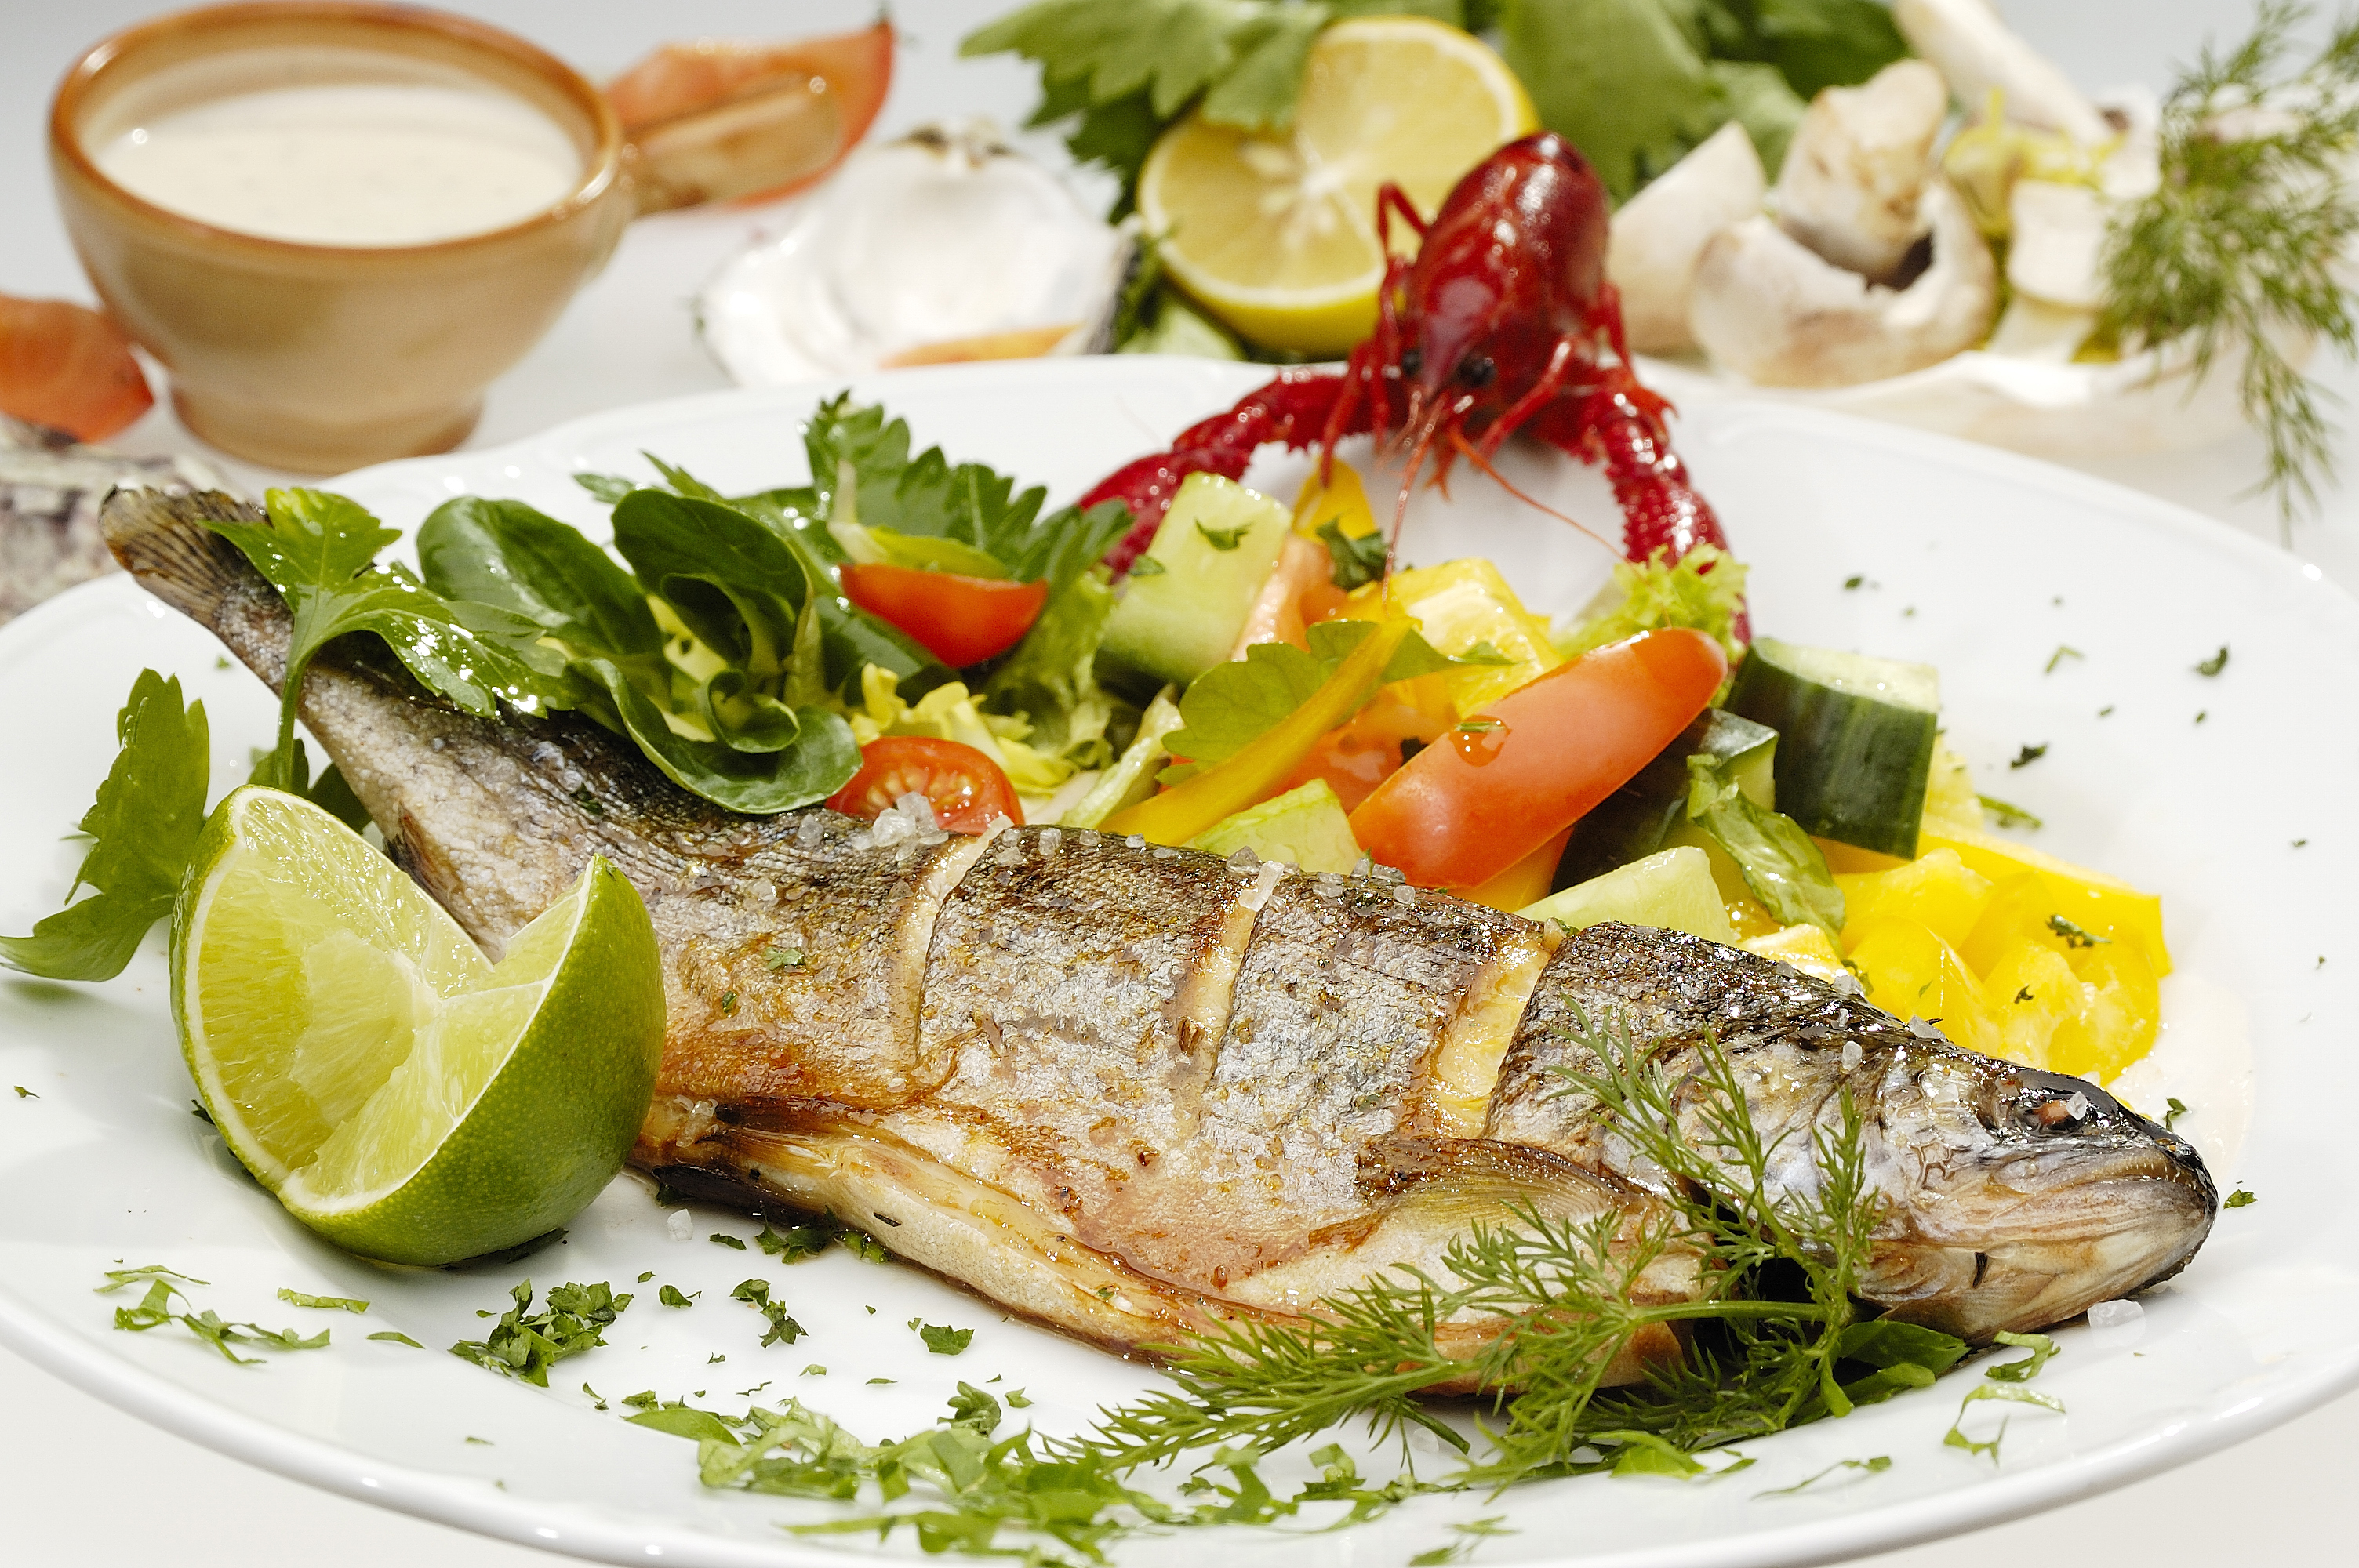 Seafood Might Protect Brain in People at Genetic Risk for Alzheimers